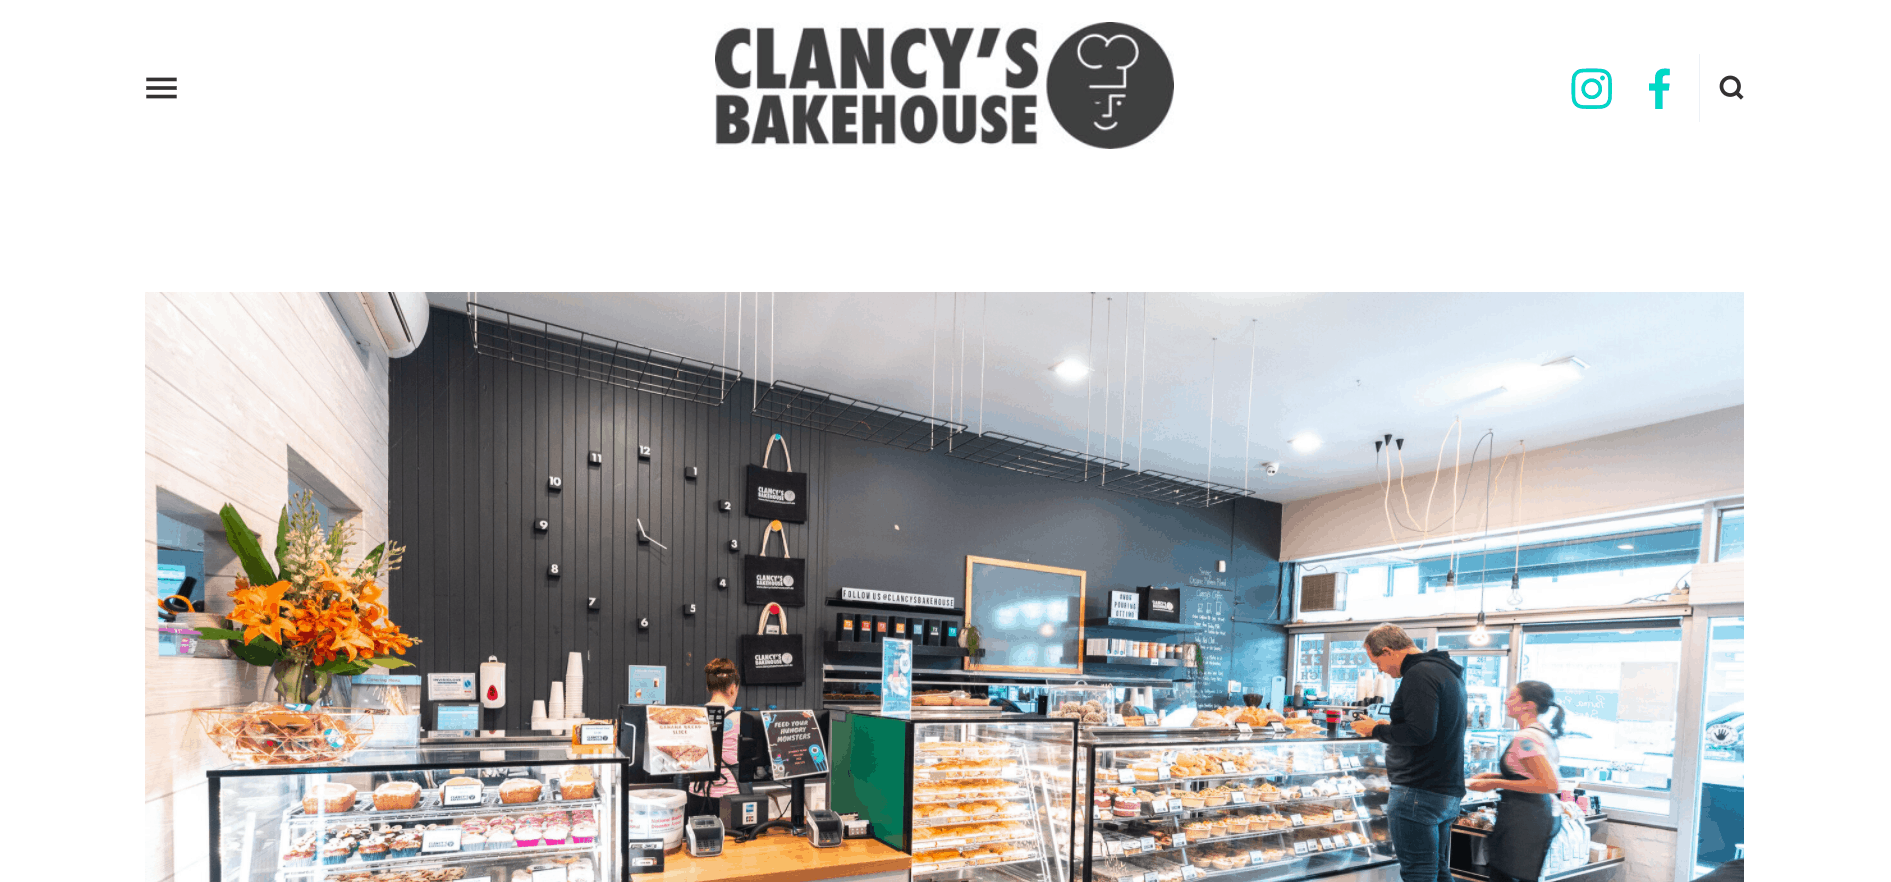 Clancy's Bakehouse